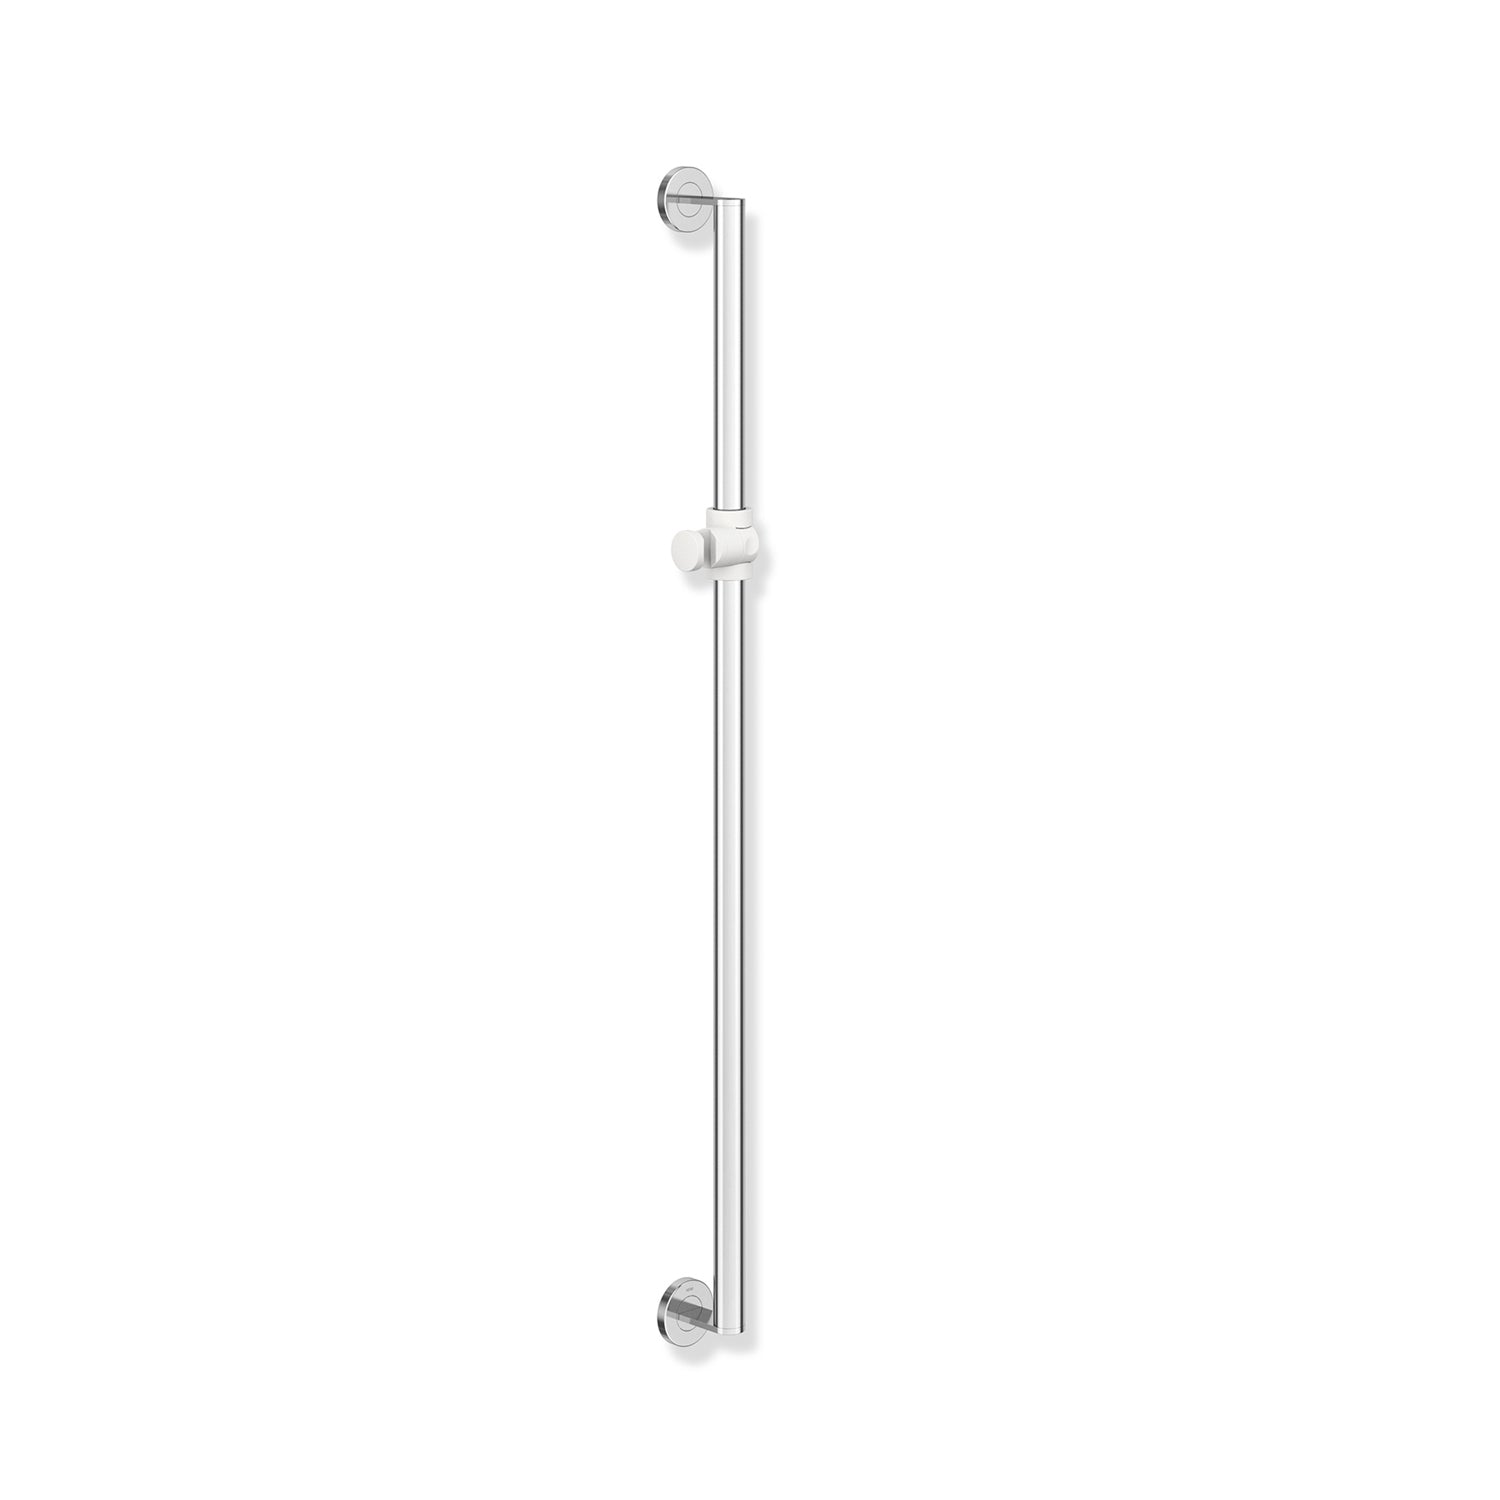 900mm Freestyle Supportive Shower Rail with a chrome finish on a white background